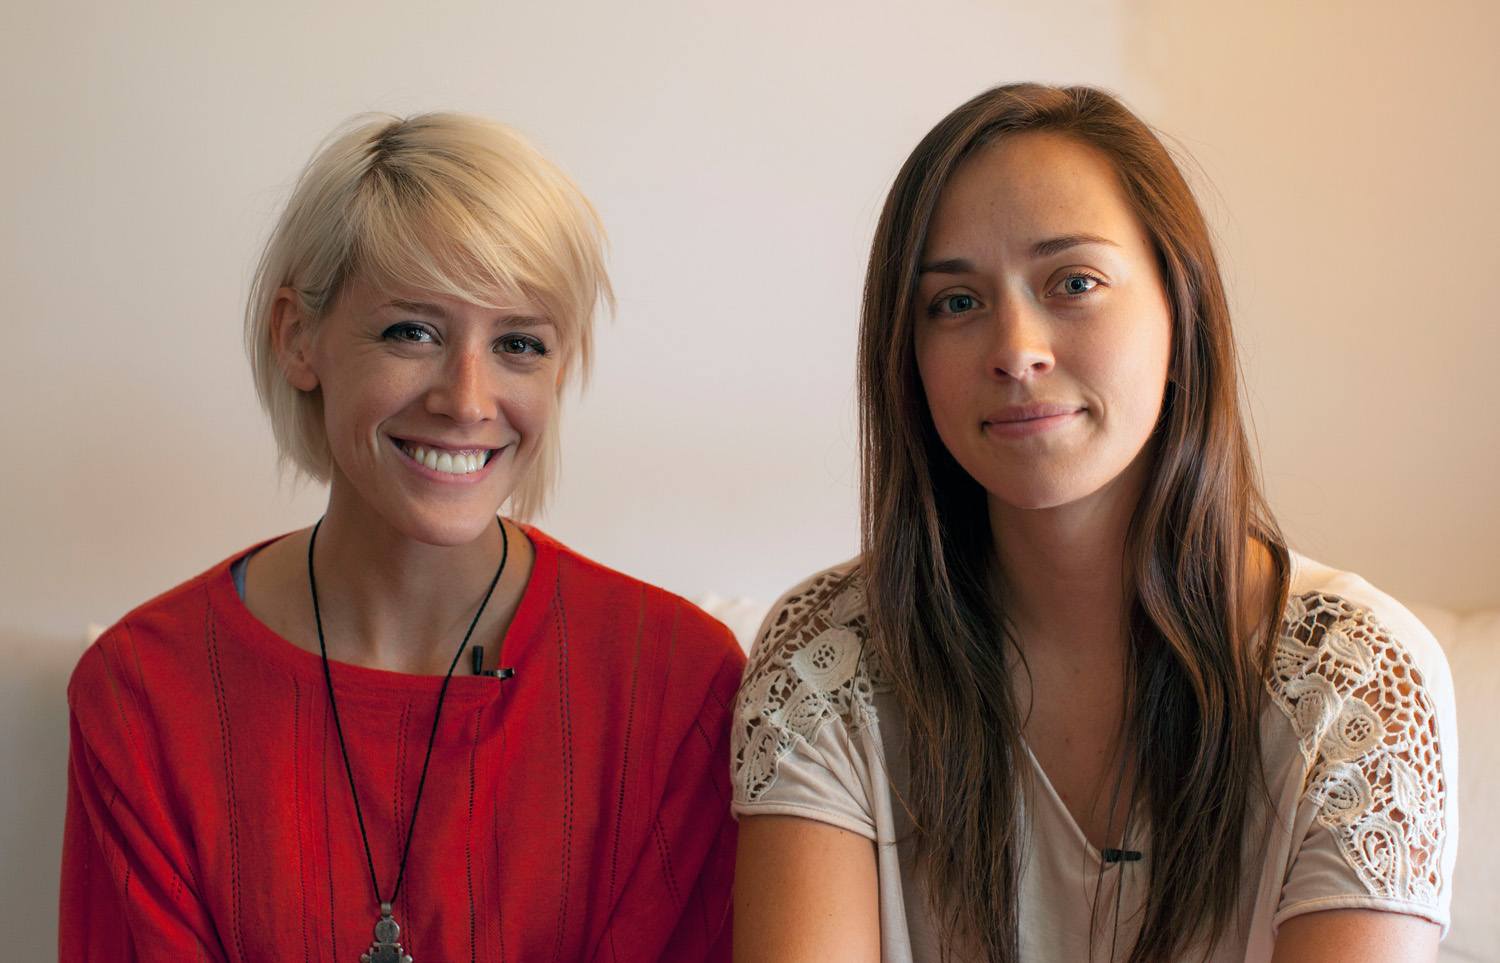 Filmmakers Mo Scarpelli and Alexandria Bombach